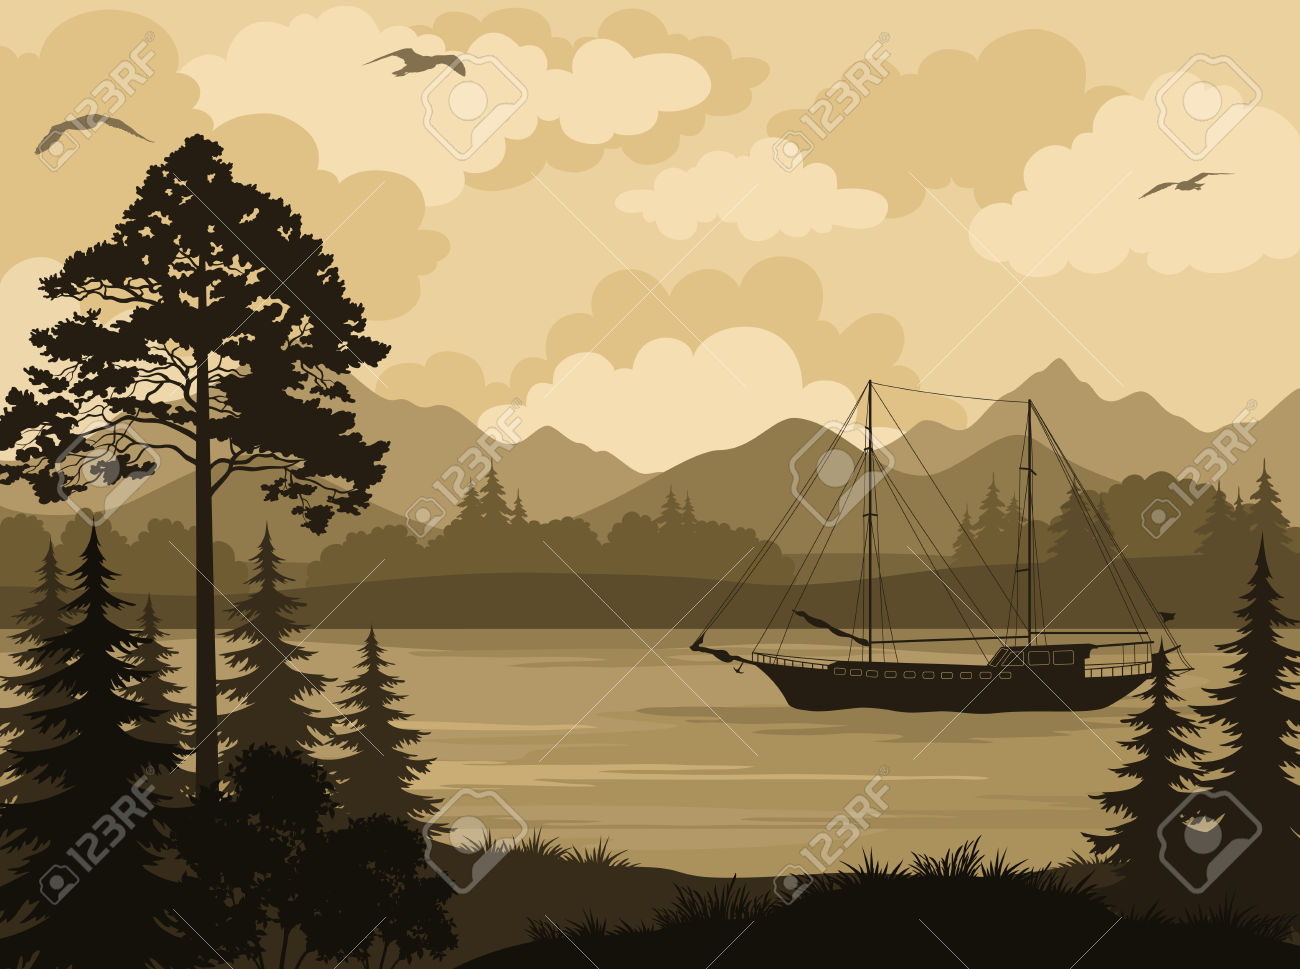 Mountain and lake and tree clipart.